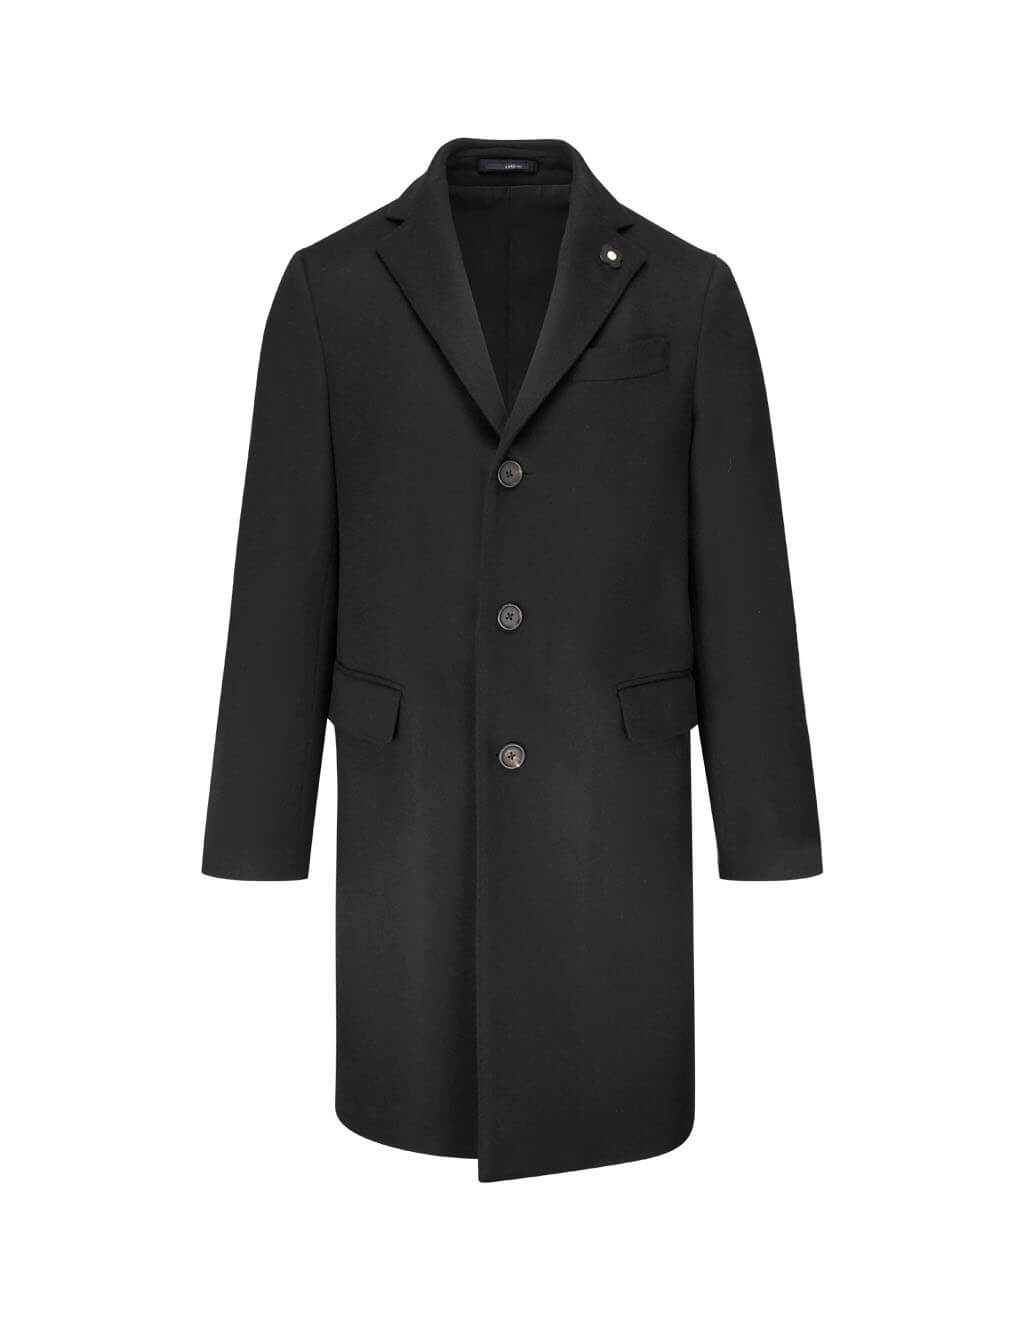 Lardini Men's Giulio Fashion Black Single-Breasted Coat IL23648AEILRP536934